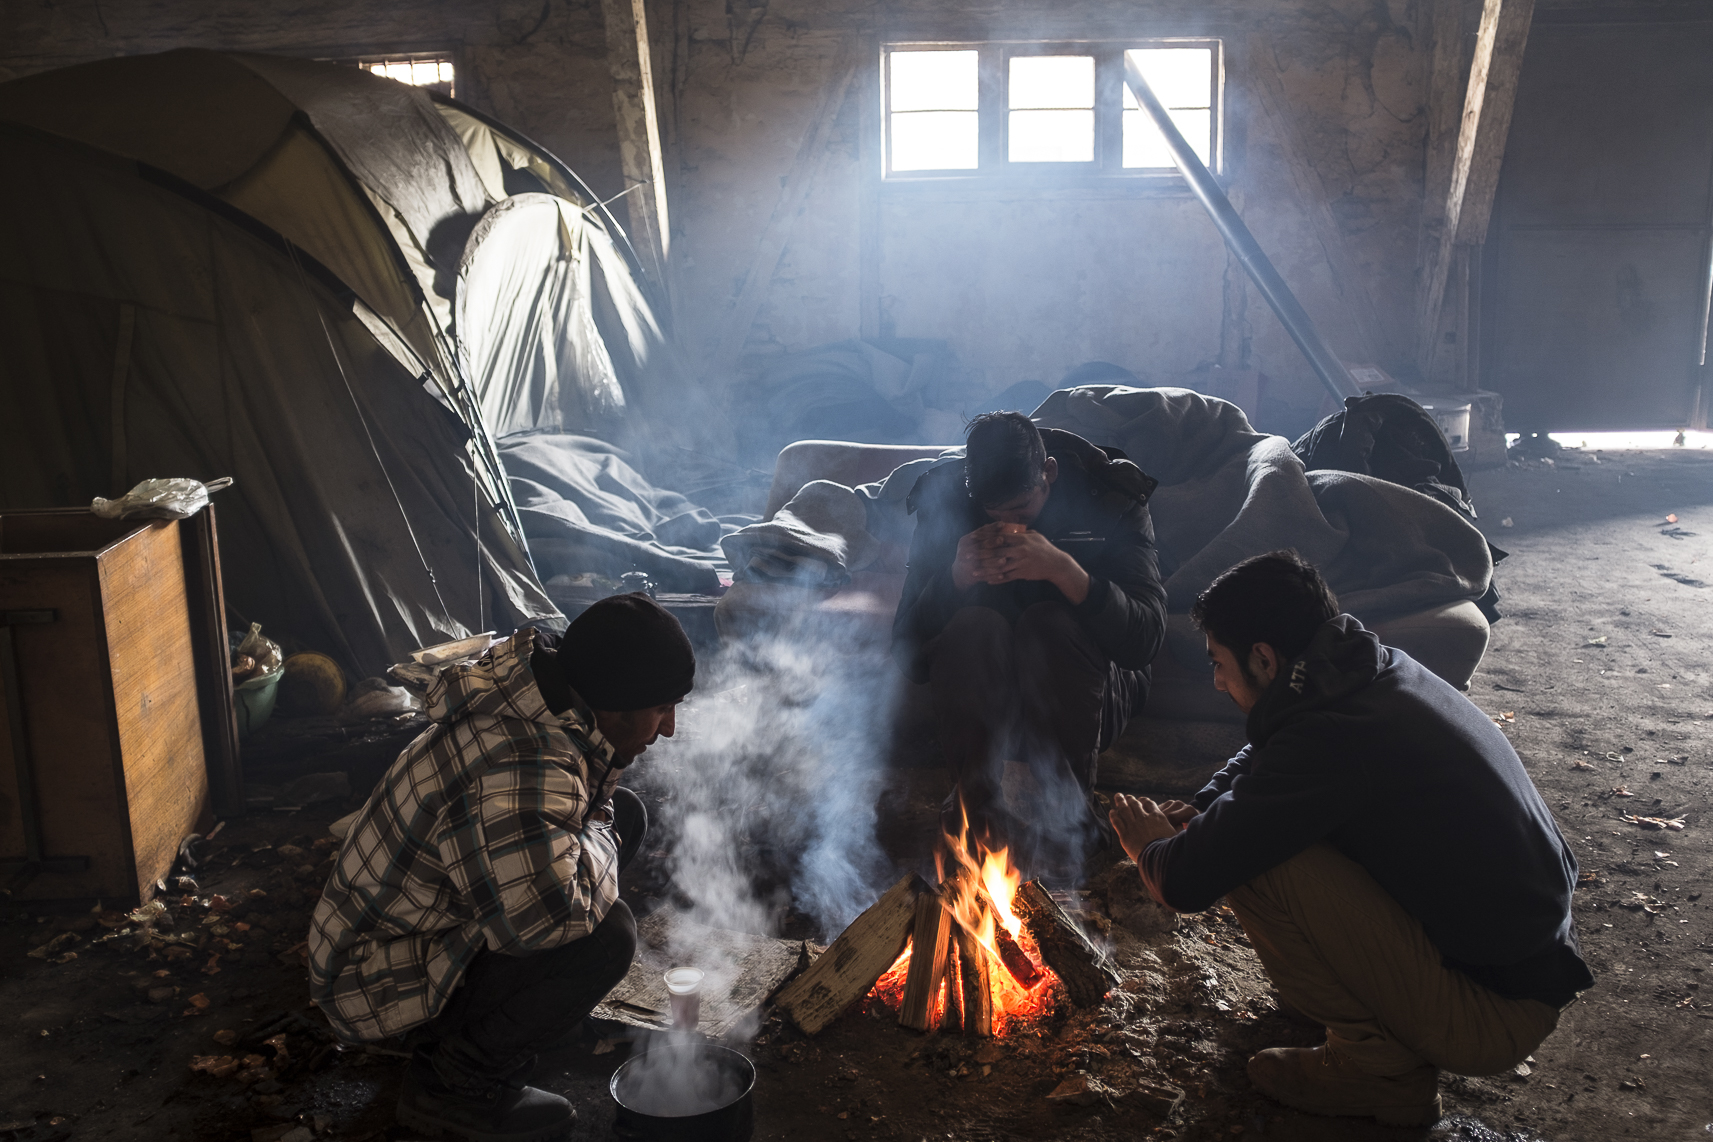 Migrants drink tea while sitting around a fire warming themselves inside an abandoned warehouse where they took shelter in Belgrade, Serbia. February 14, 2107.